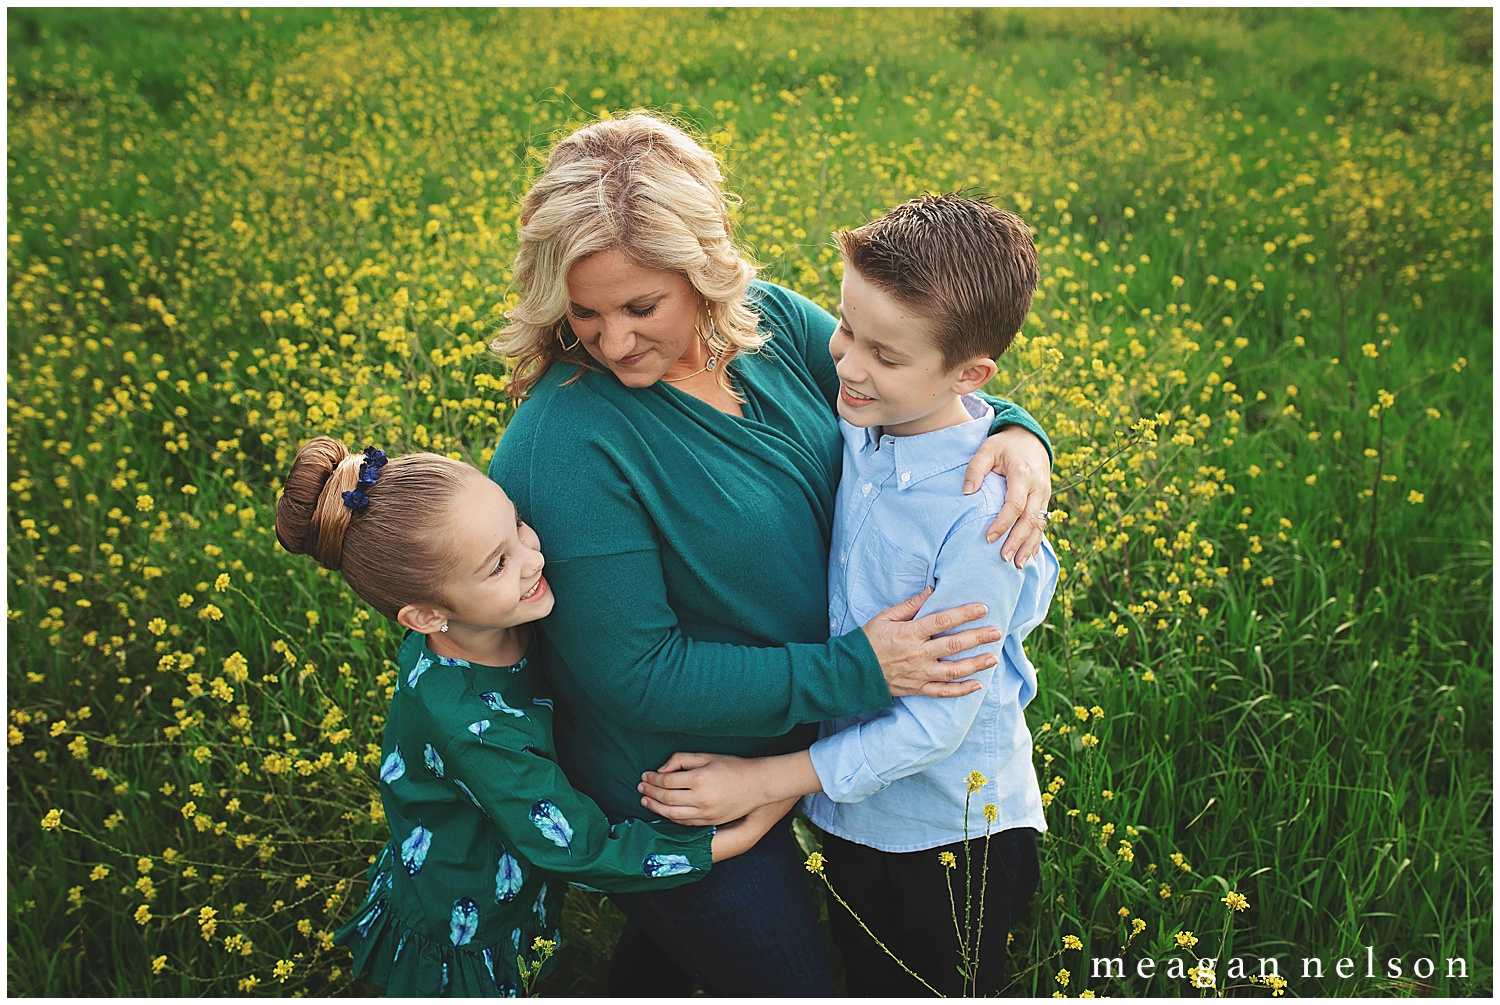 fort_worth_family_photographer_keller_pointe028.jpg